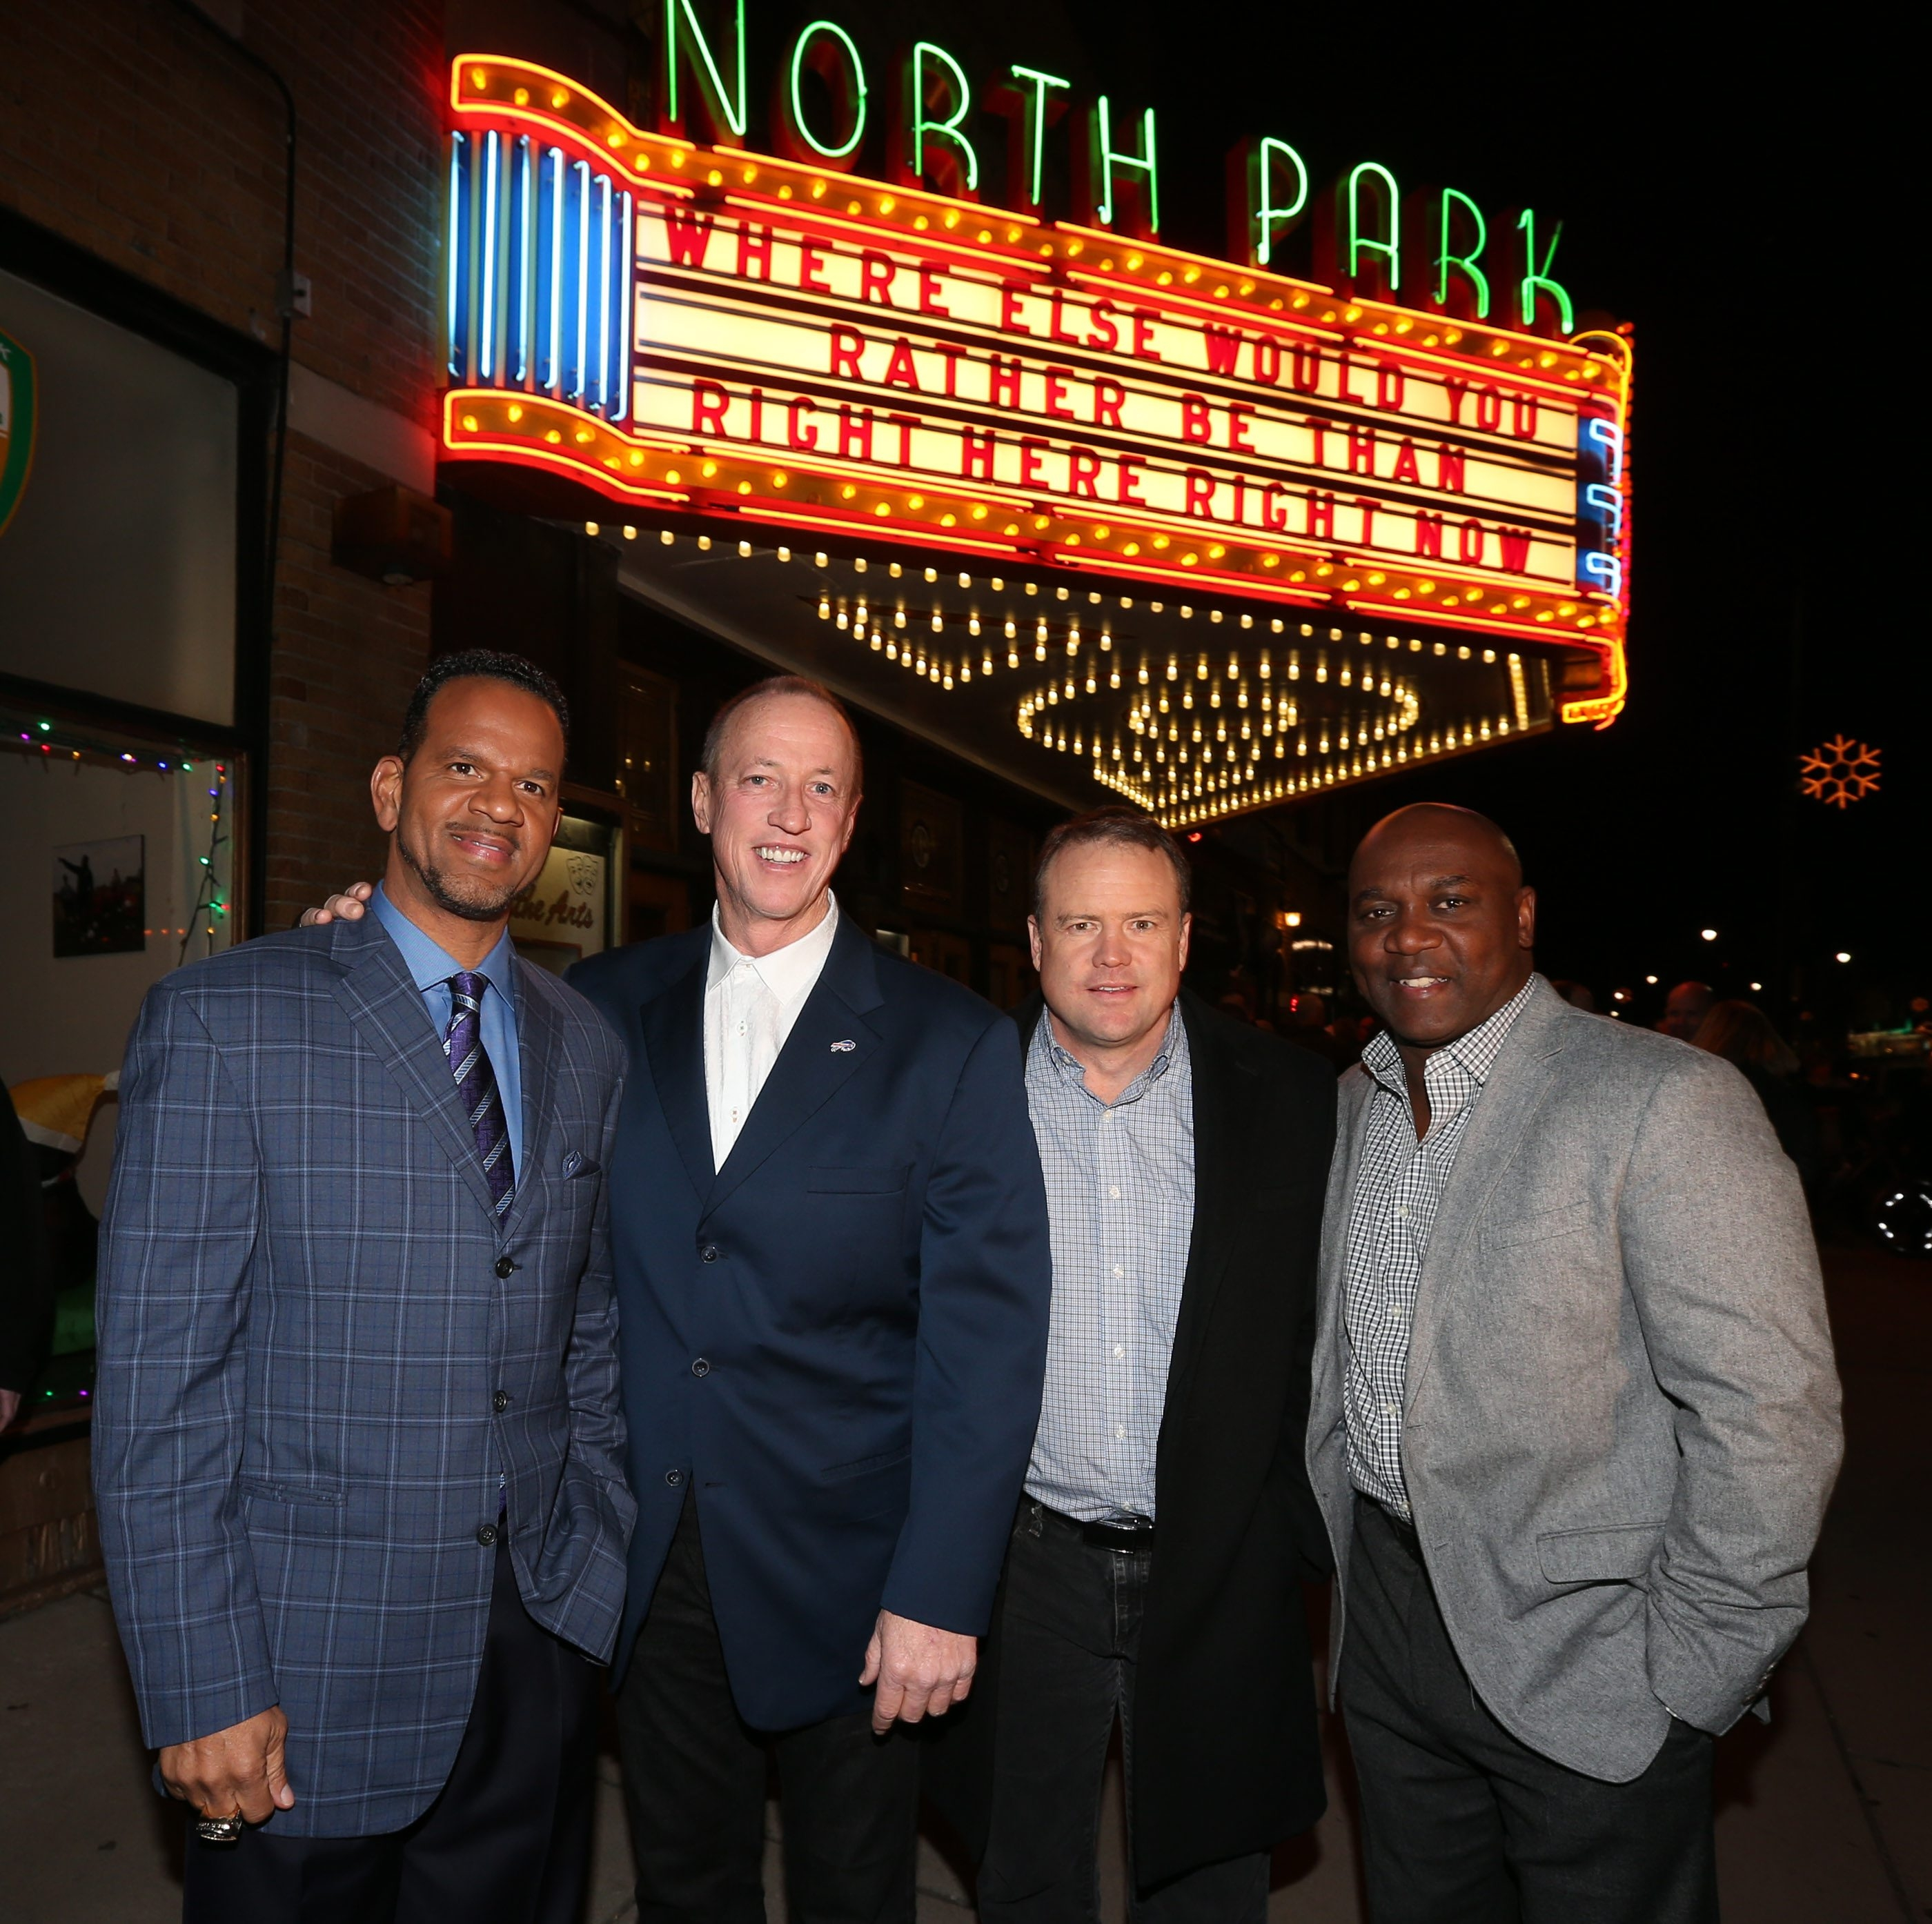 """From left, Andre Reed, Jim Kelly, Steve Tasker and Thurman Thomas stand shoulder to shoulder outside the North Park Theatre, where the world premiere was held Wednesday night for ESPN's film, """"Four Falls of Buffalo.""""  , Andre Reed and Steve Tasker ham it up on the red carpet for the opening of ESPN's '30 for 30' documentary  of the Super Bowl era Buffalo Bills at North Park theater in Buffalo, N.Y. on Wednesday, Dec. 9, 2015."""